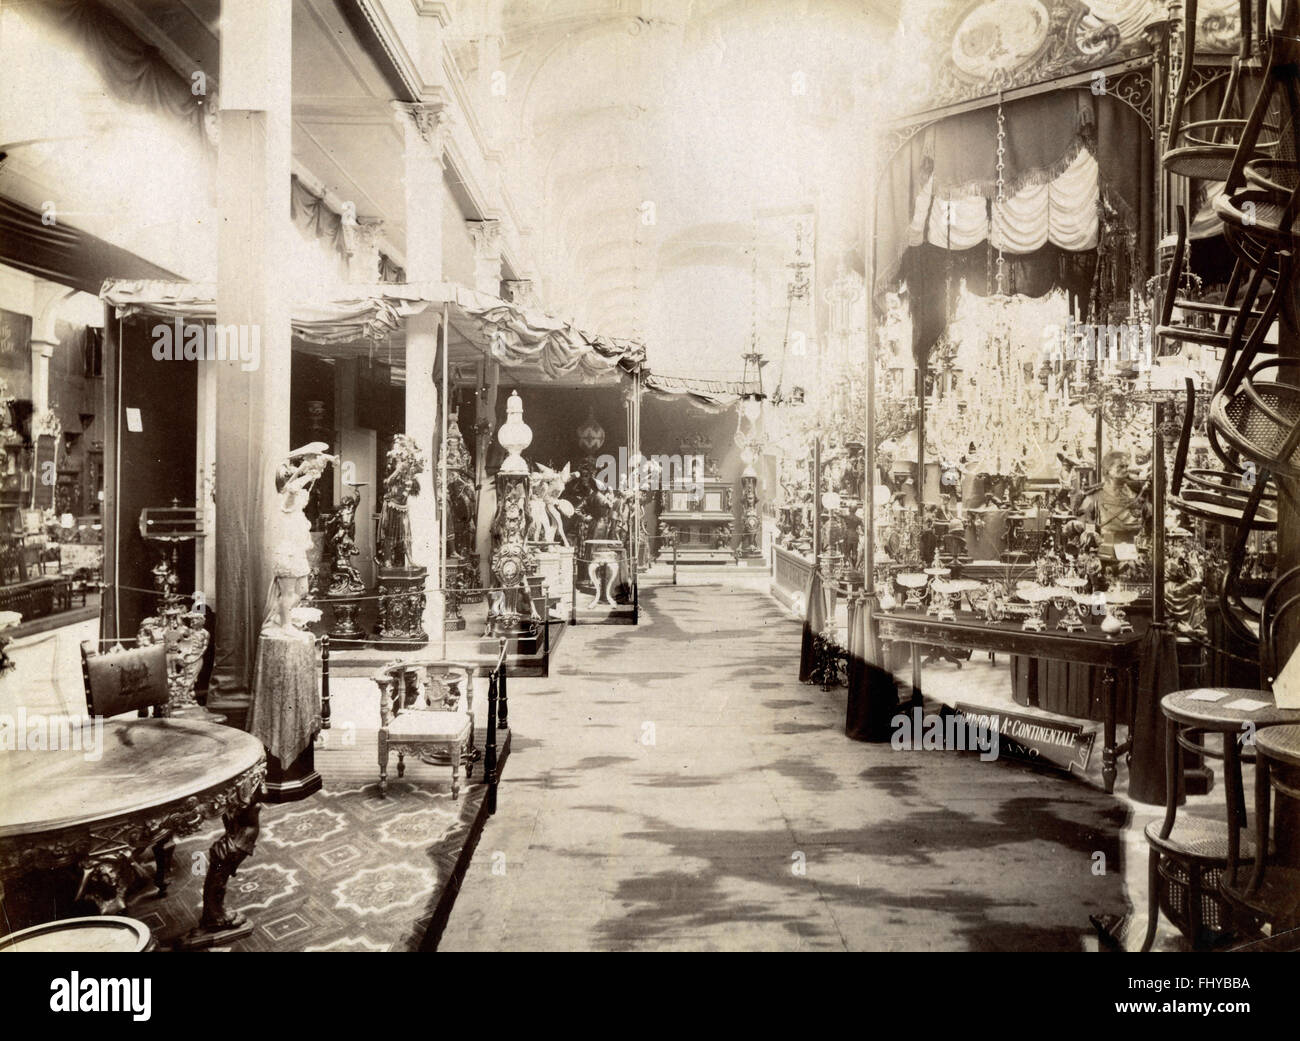 Italian General Exposition of Turin in 1884, Fine Arts Pavilion - Stock Image